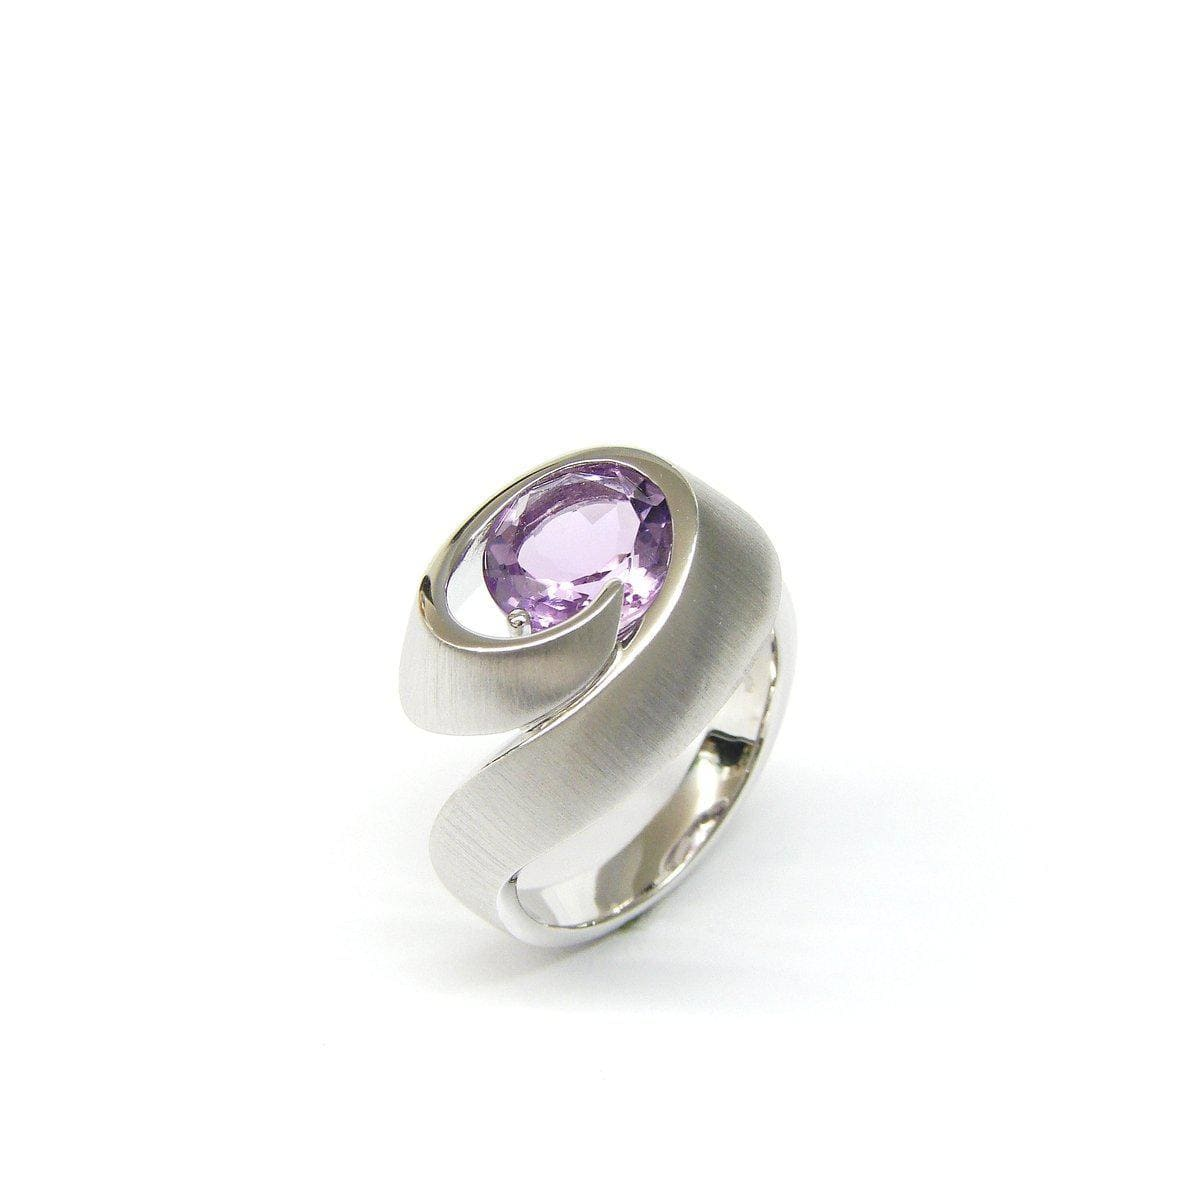 Rhodium Plated Sterling Silver Amethyst Ring - 42/84835-AM-Breuning-Renee Taylor Gallery